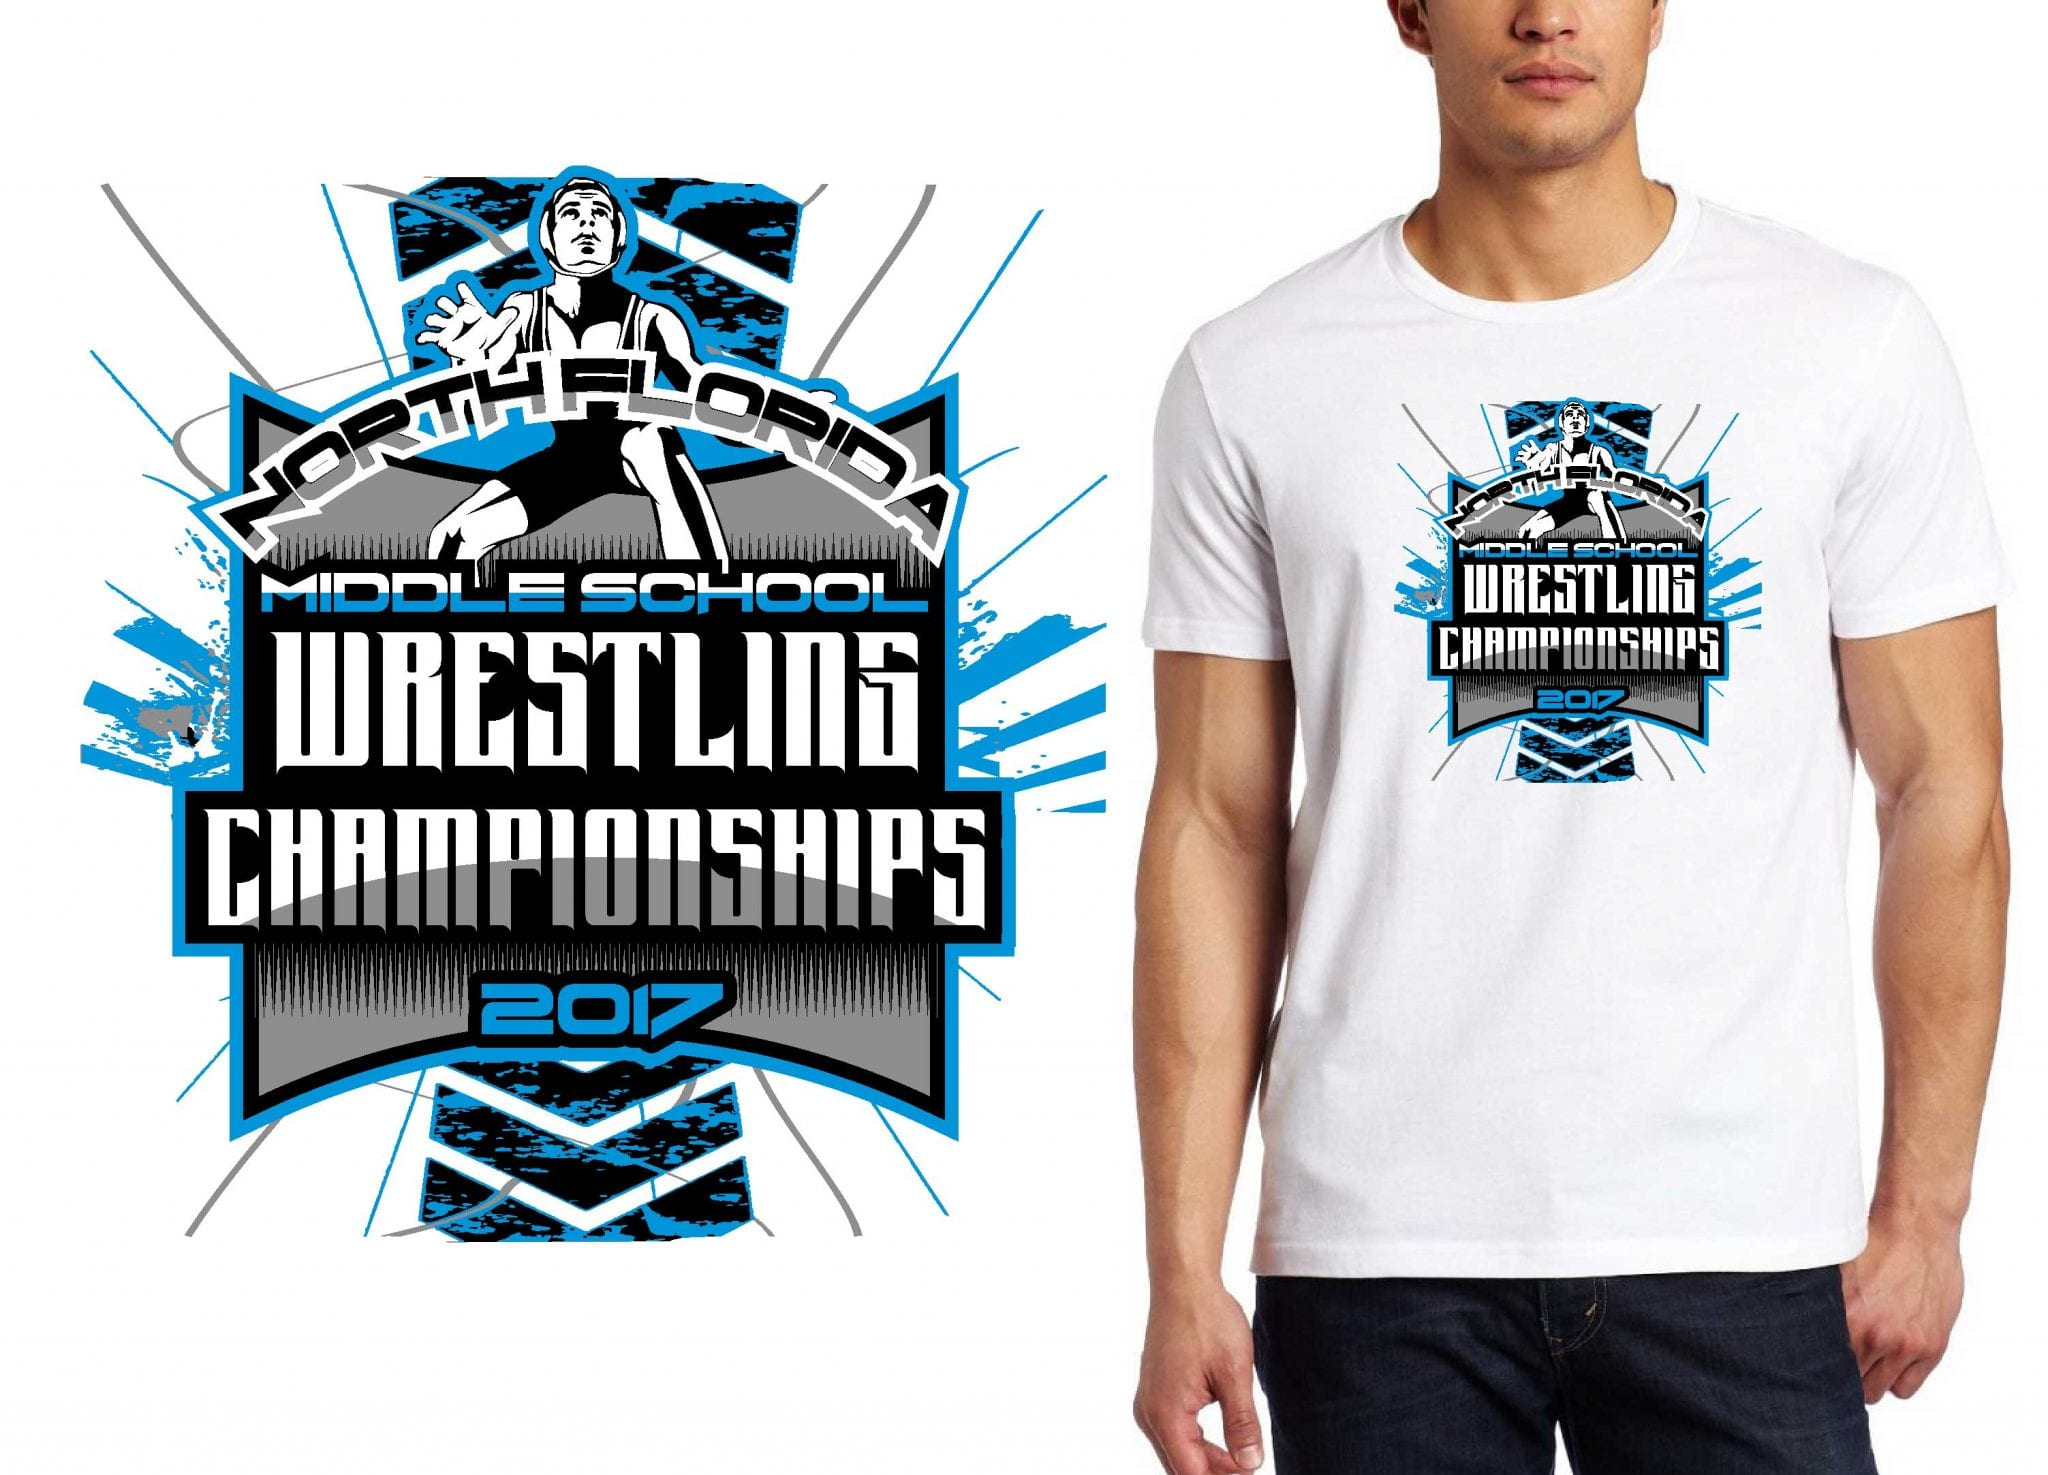 Wrestling Tournament T Shirt Designs Kamos T Shirt